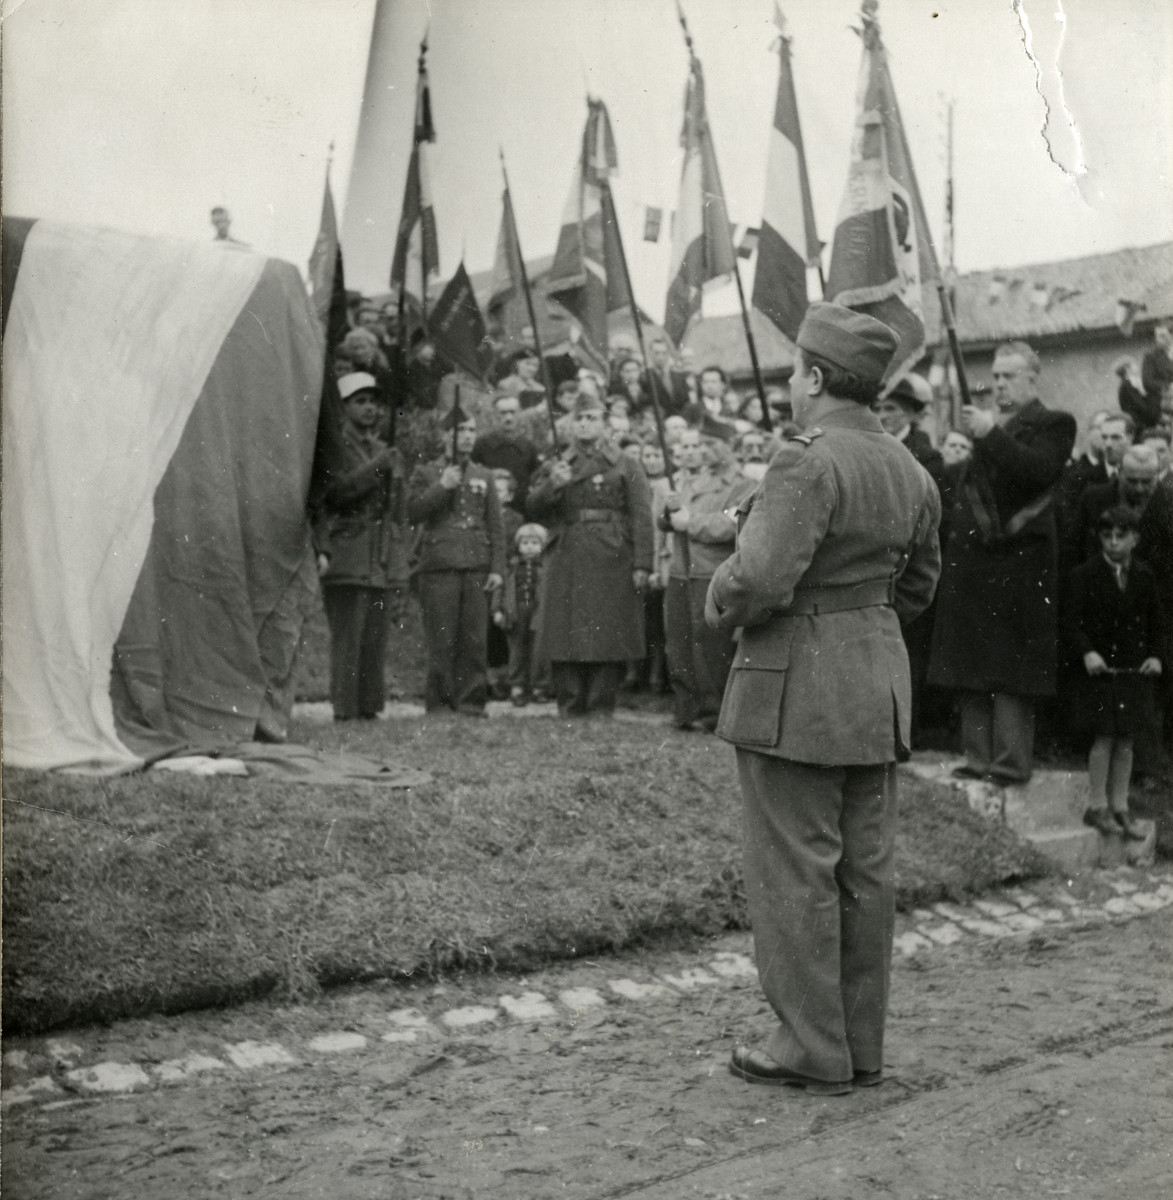 Victor David Tulman addresses other members of the Free French Forces.